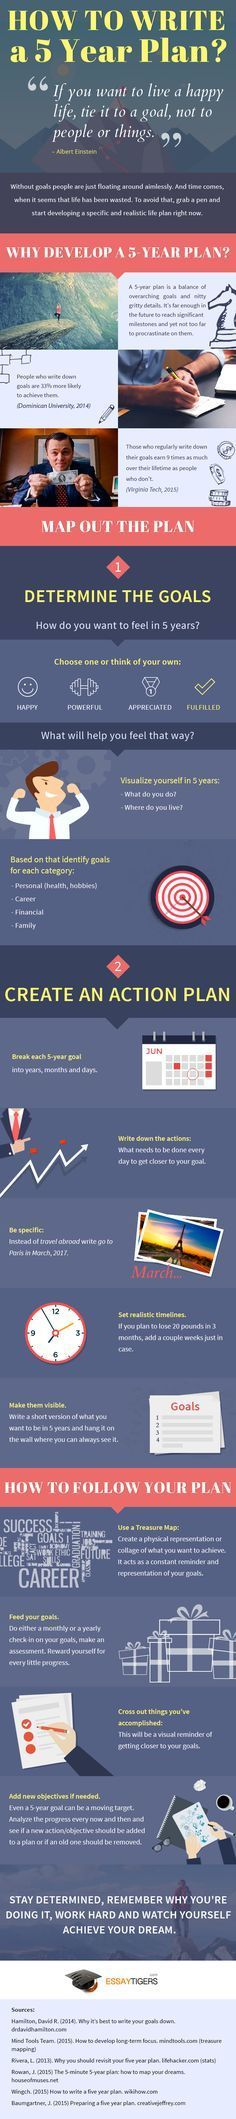 Having a strategic goal is good. It means you have something to look forward to. But it's much better when you actually start taking steps towards your goal. The infographic below showcases one of the most important steps in the goal-achieving process - writing a plan. - Learn how I made it to 100K in one months with e-commerce!